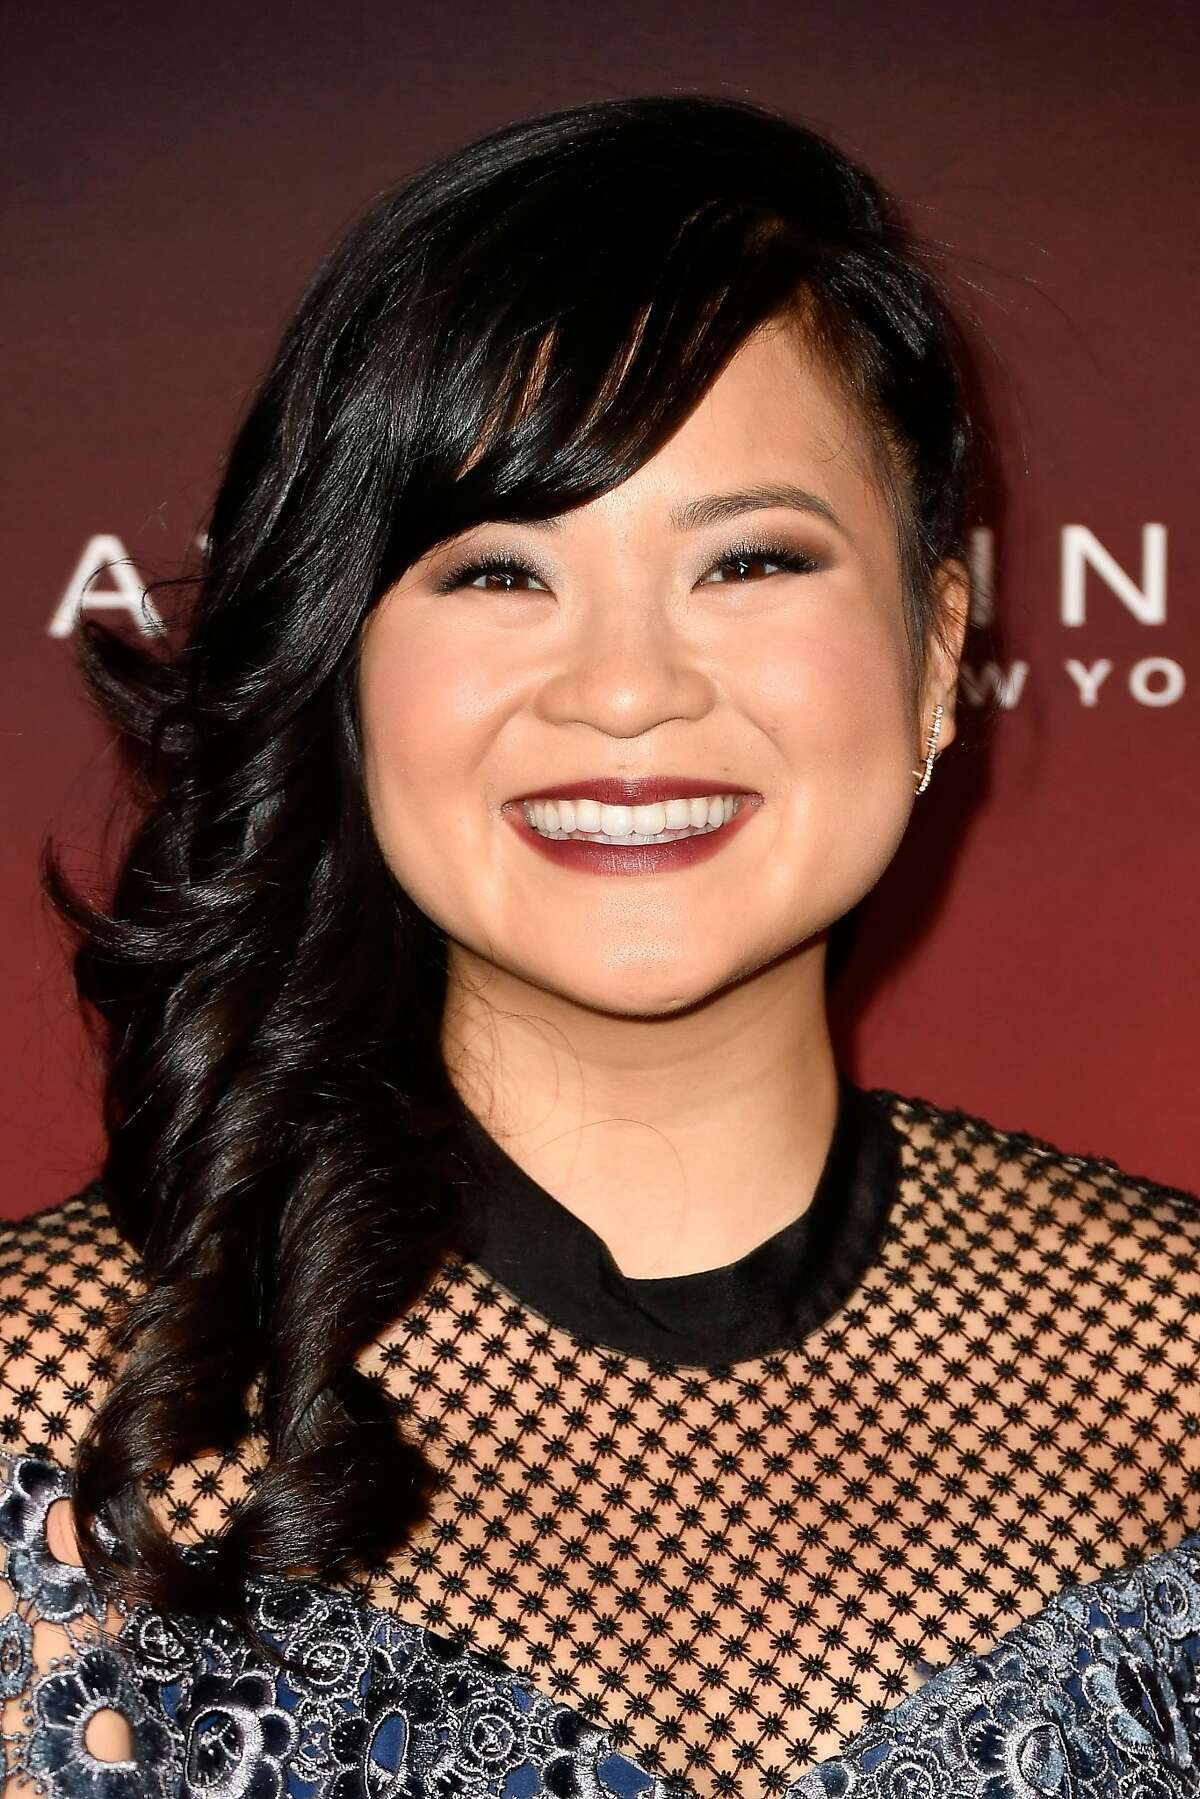 """LOS ANGELES, CA - OCTOBER 04: Kelly Marie Tran attends People's """"Ones To Watch"""" at NeueHouse Hollywood on October 4, 2017 in Los Angeles, California. (Photo by Frazer Harrison/Getty Images)"""